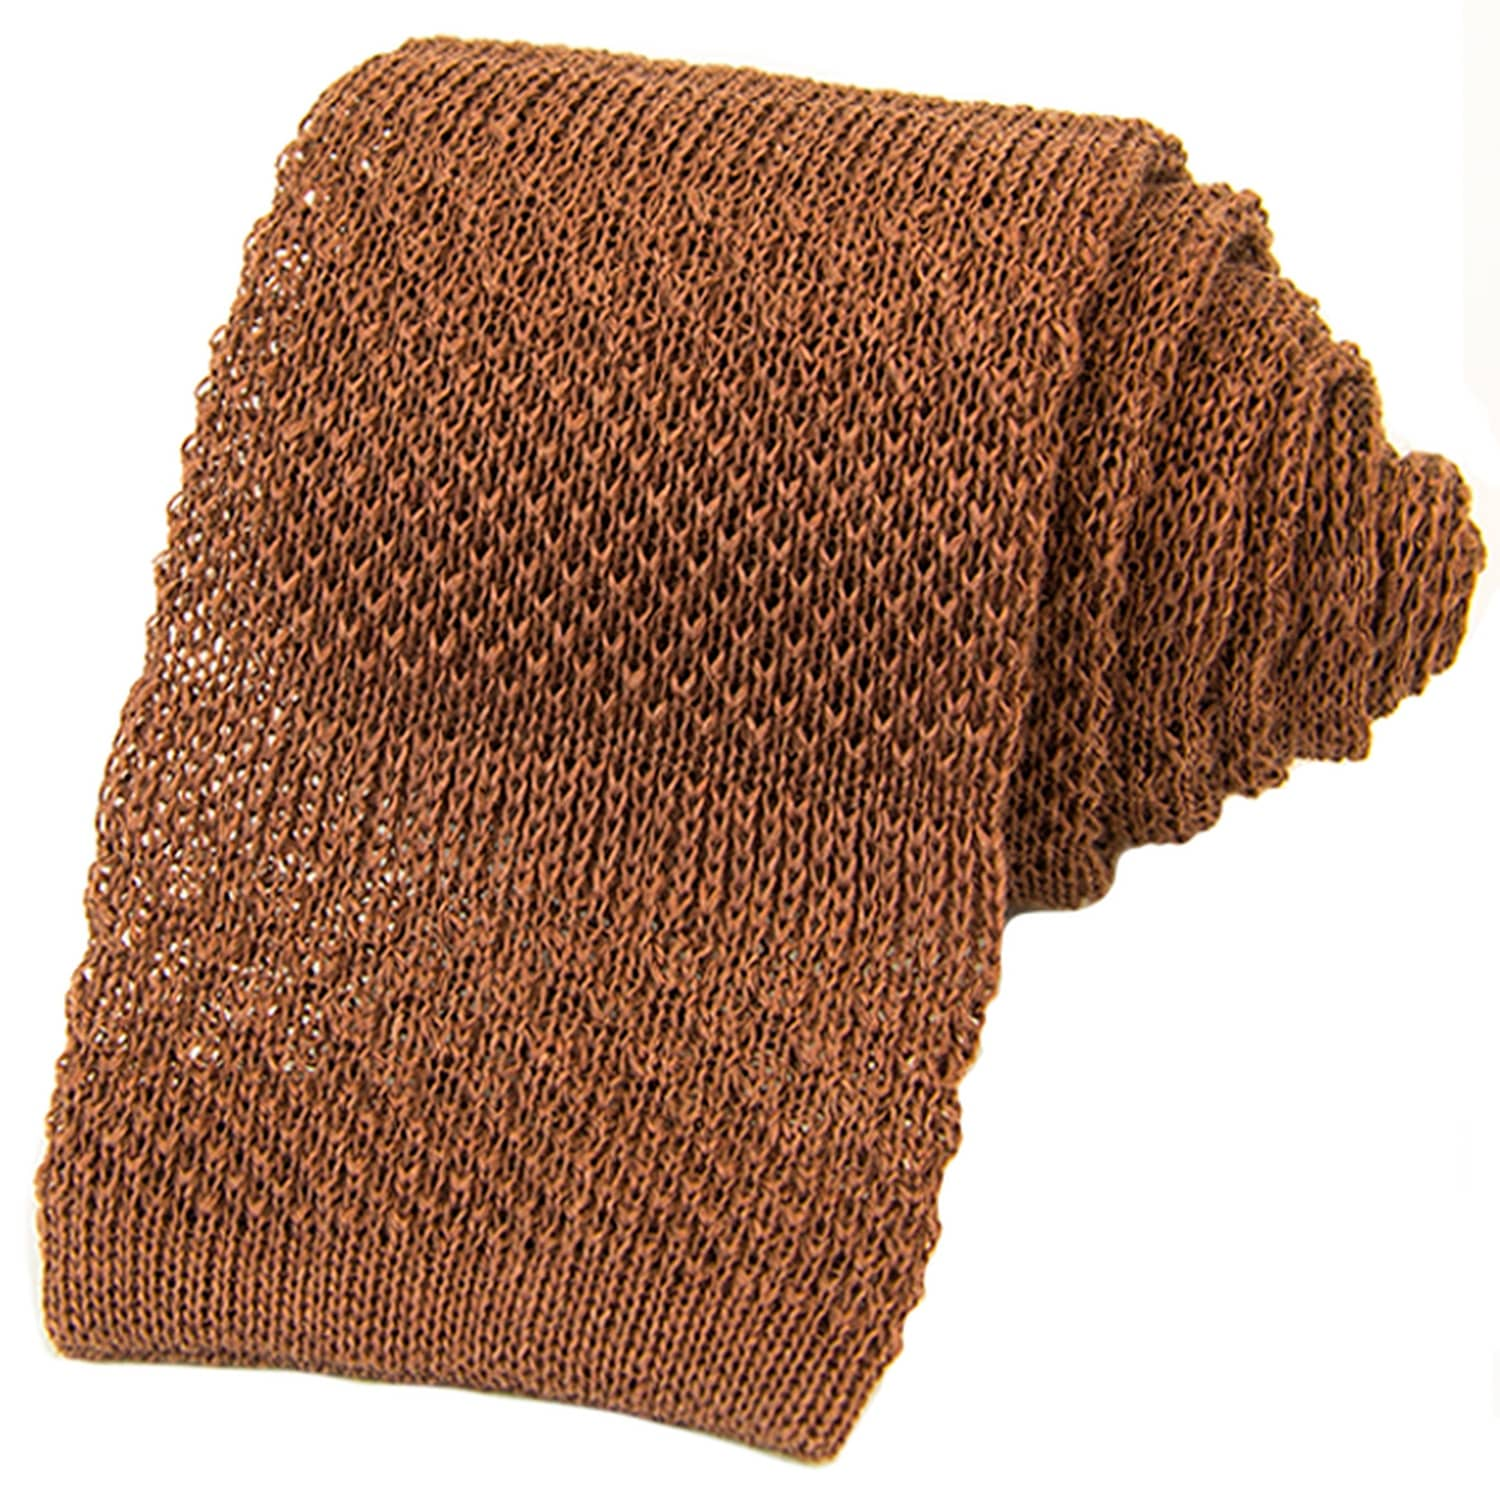 9ef82139572e Brown Solid Textured Striped Linen Knitted Tie   40 Colori   Wolf ...